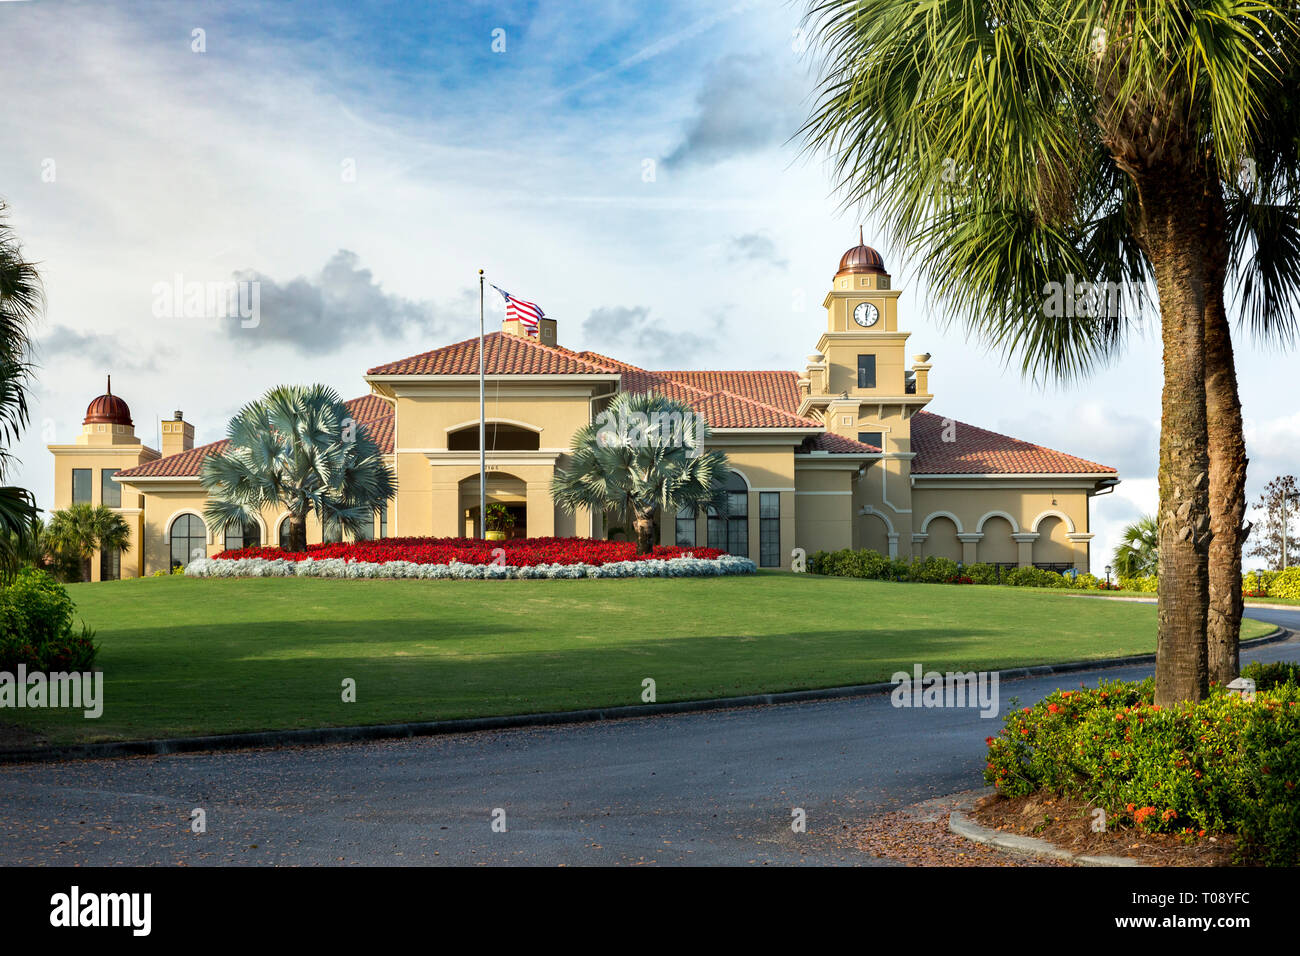 Olde Cypress Country Club, Naples, Florida, USA - Stock Image